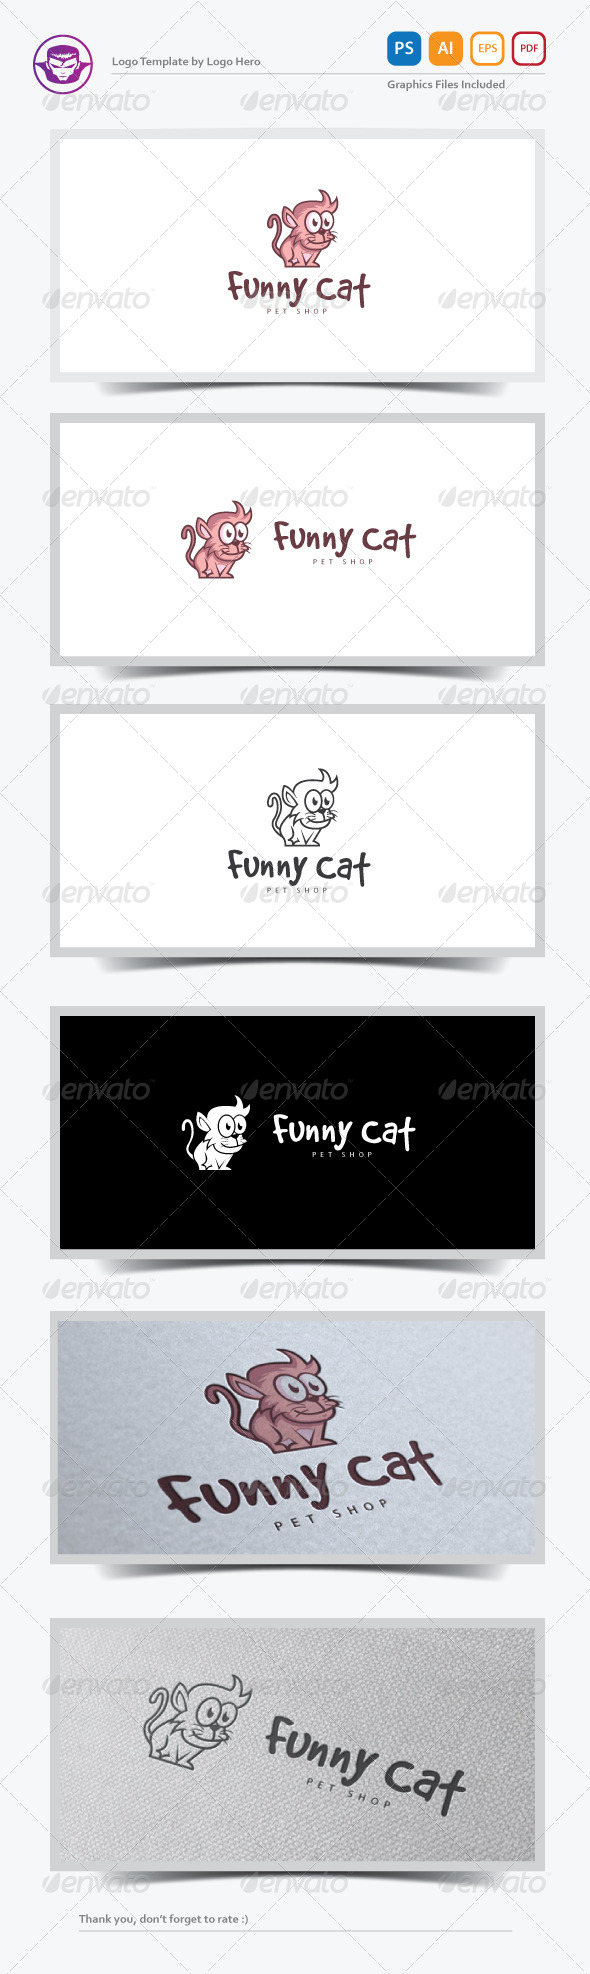 GraphicRiver Funny Cat Logo Template 7678624